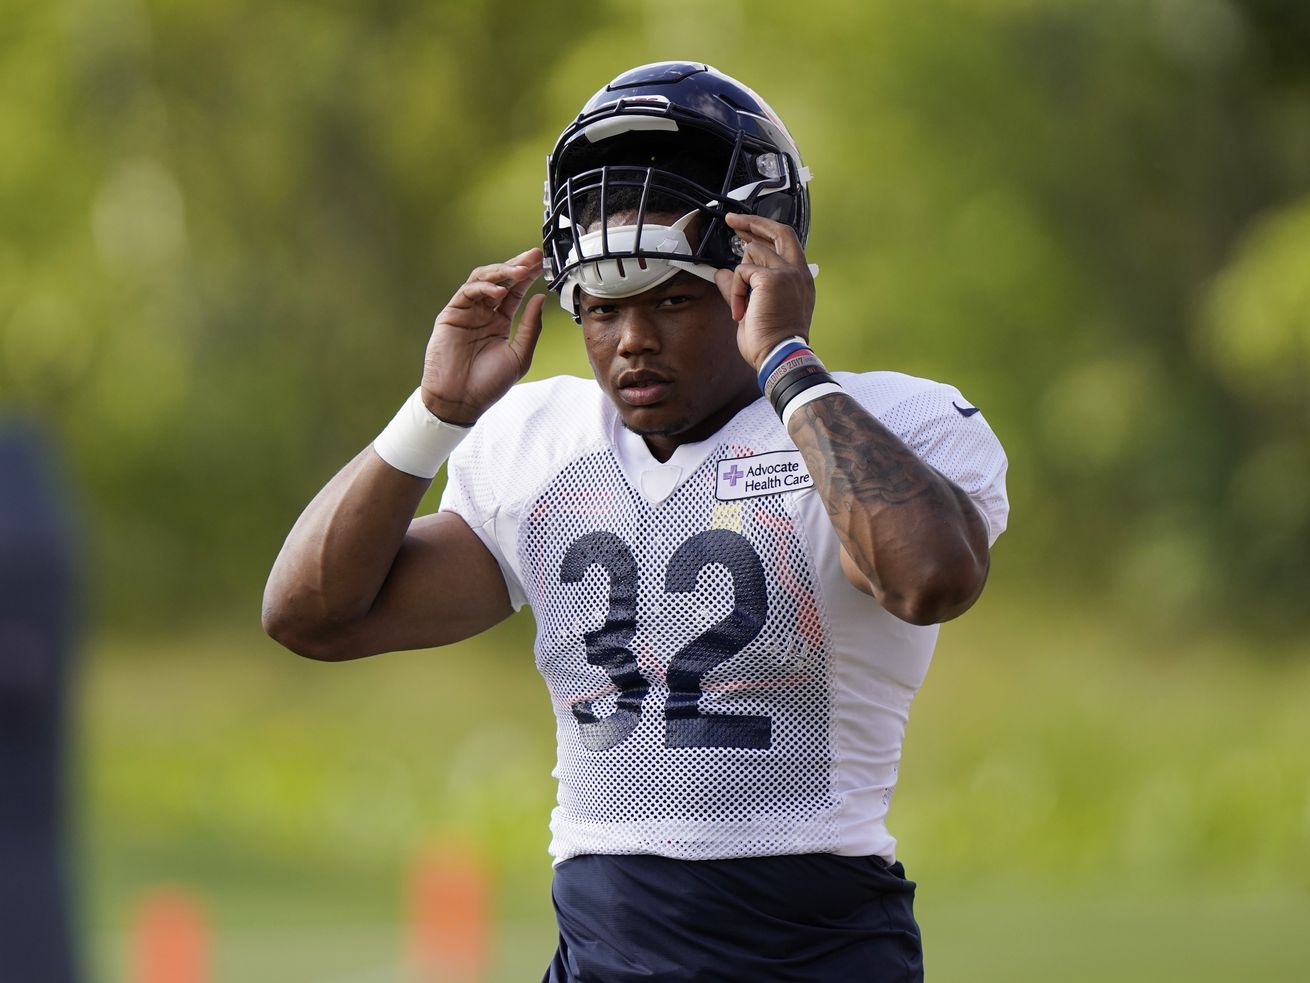 Bears RB David Montgomery leaves practice on cart due to injury